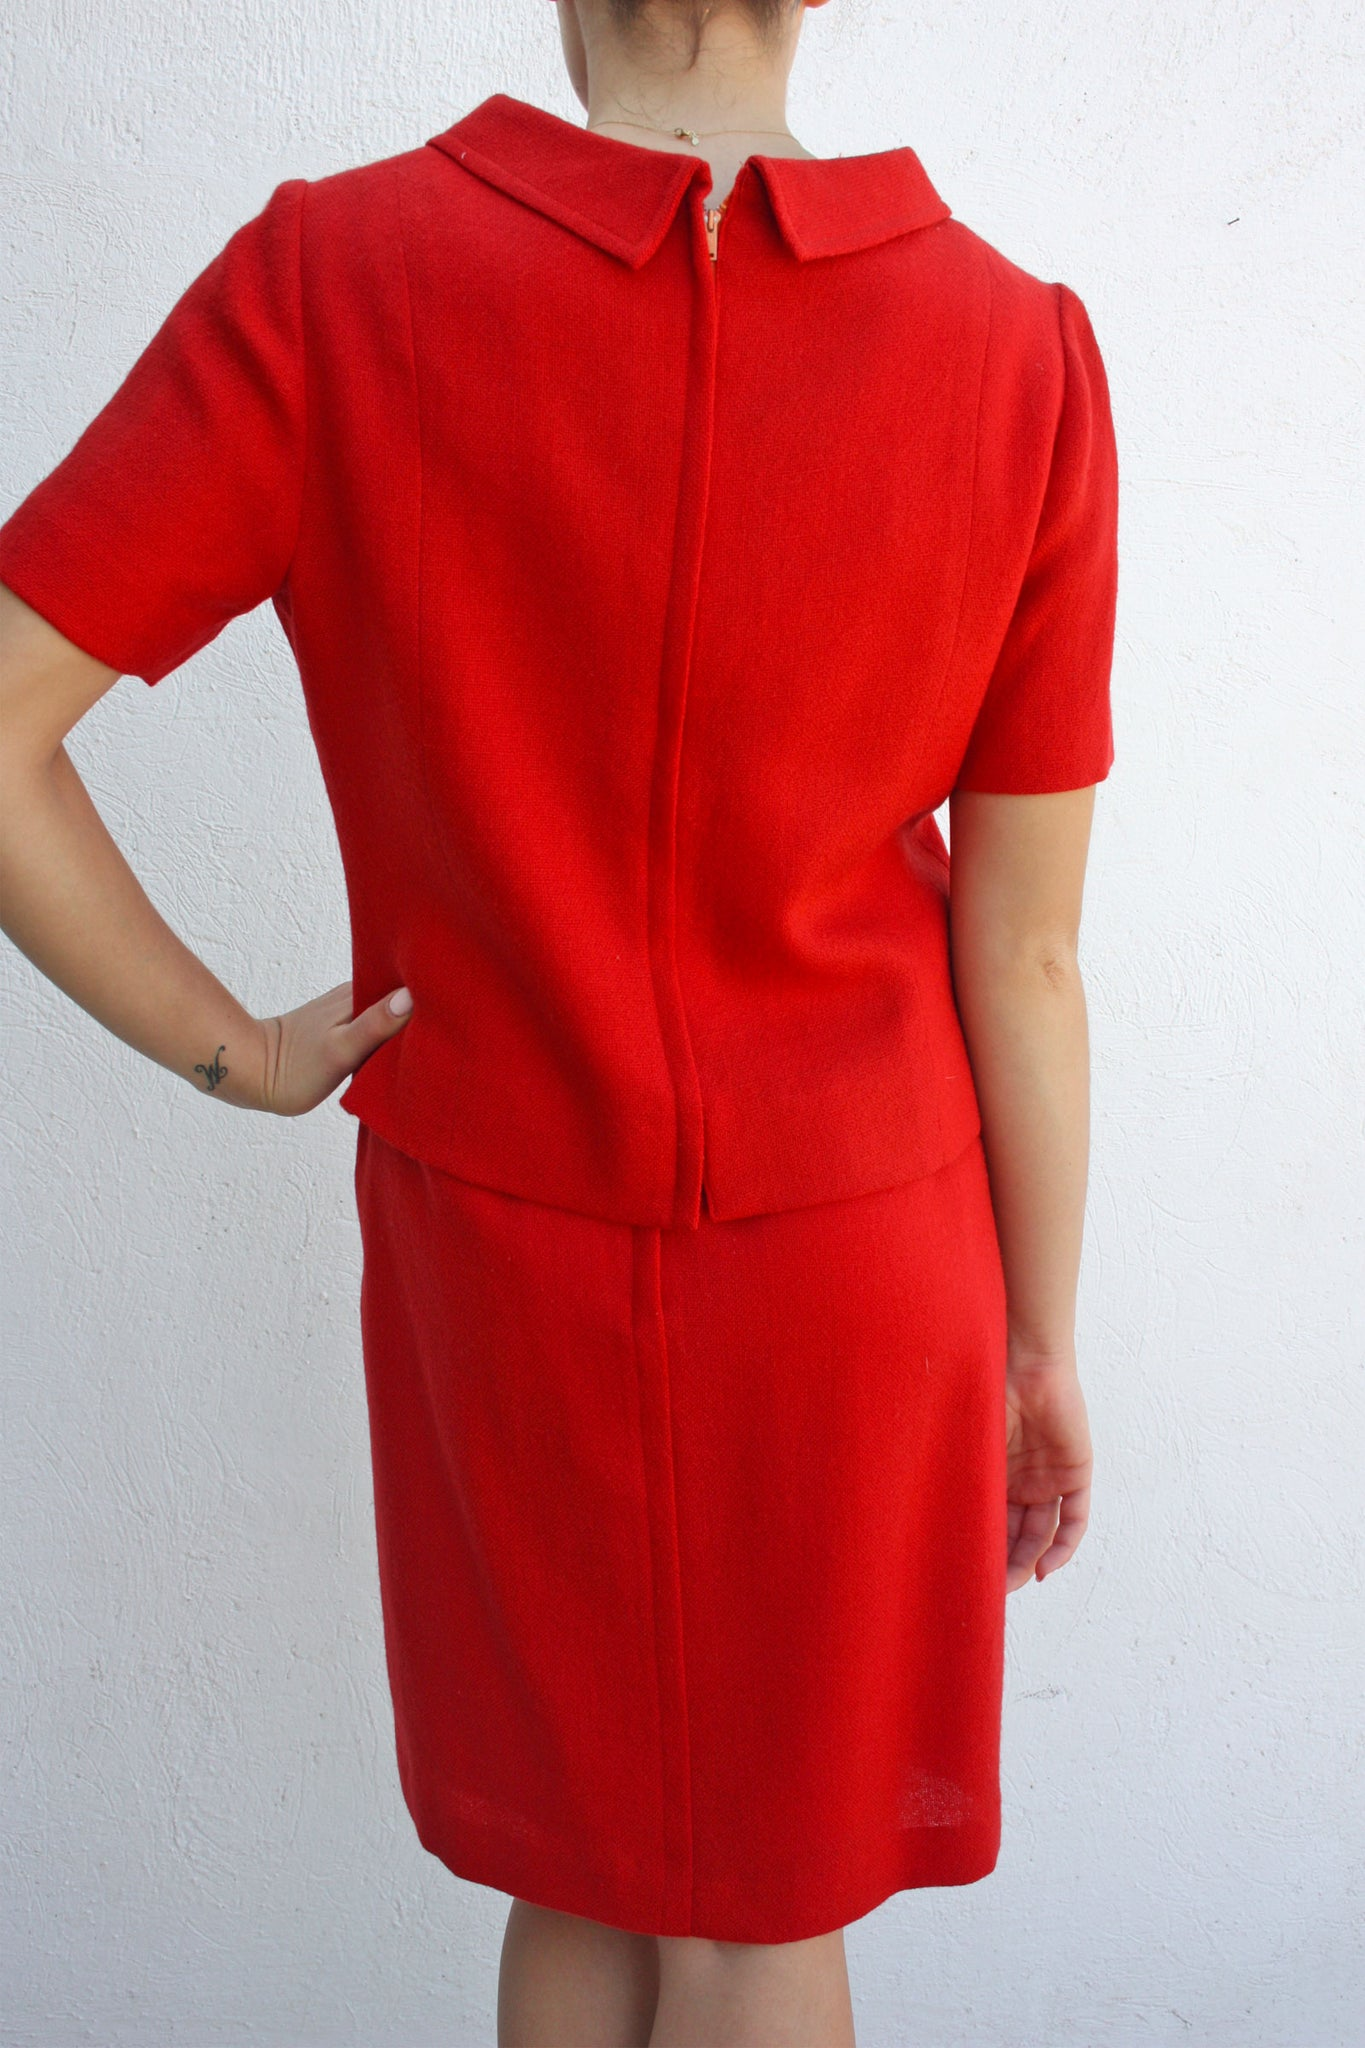 Vintage red wool suit - Shop SoLovesVintage